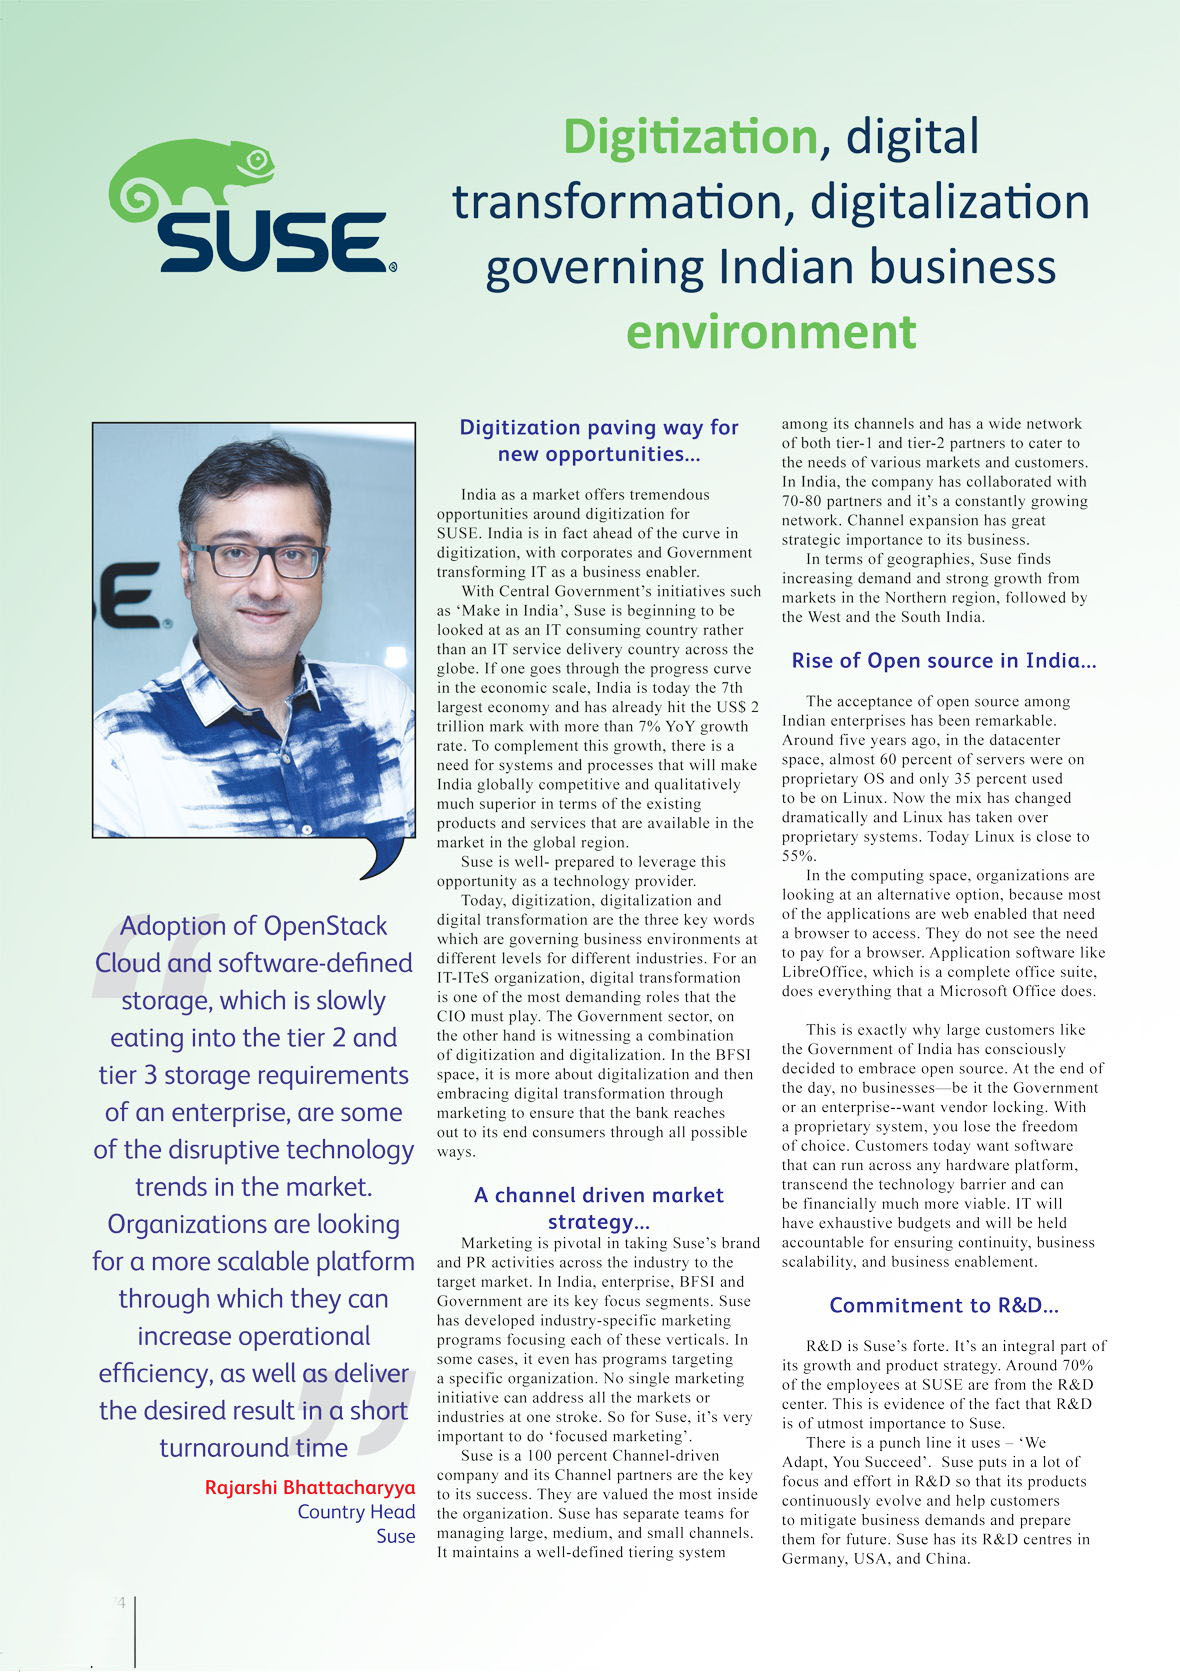 SUSE  : Digitization, digital transformation, digitalization governing Indian business environment